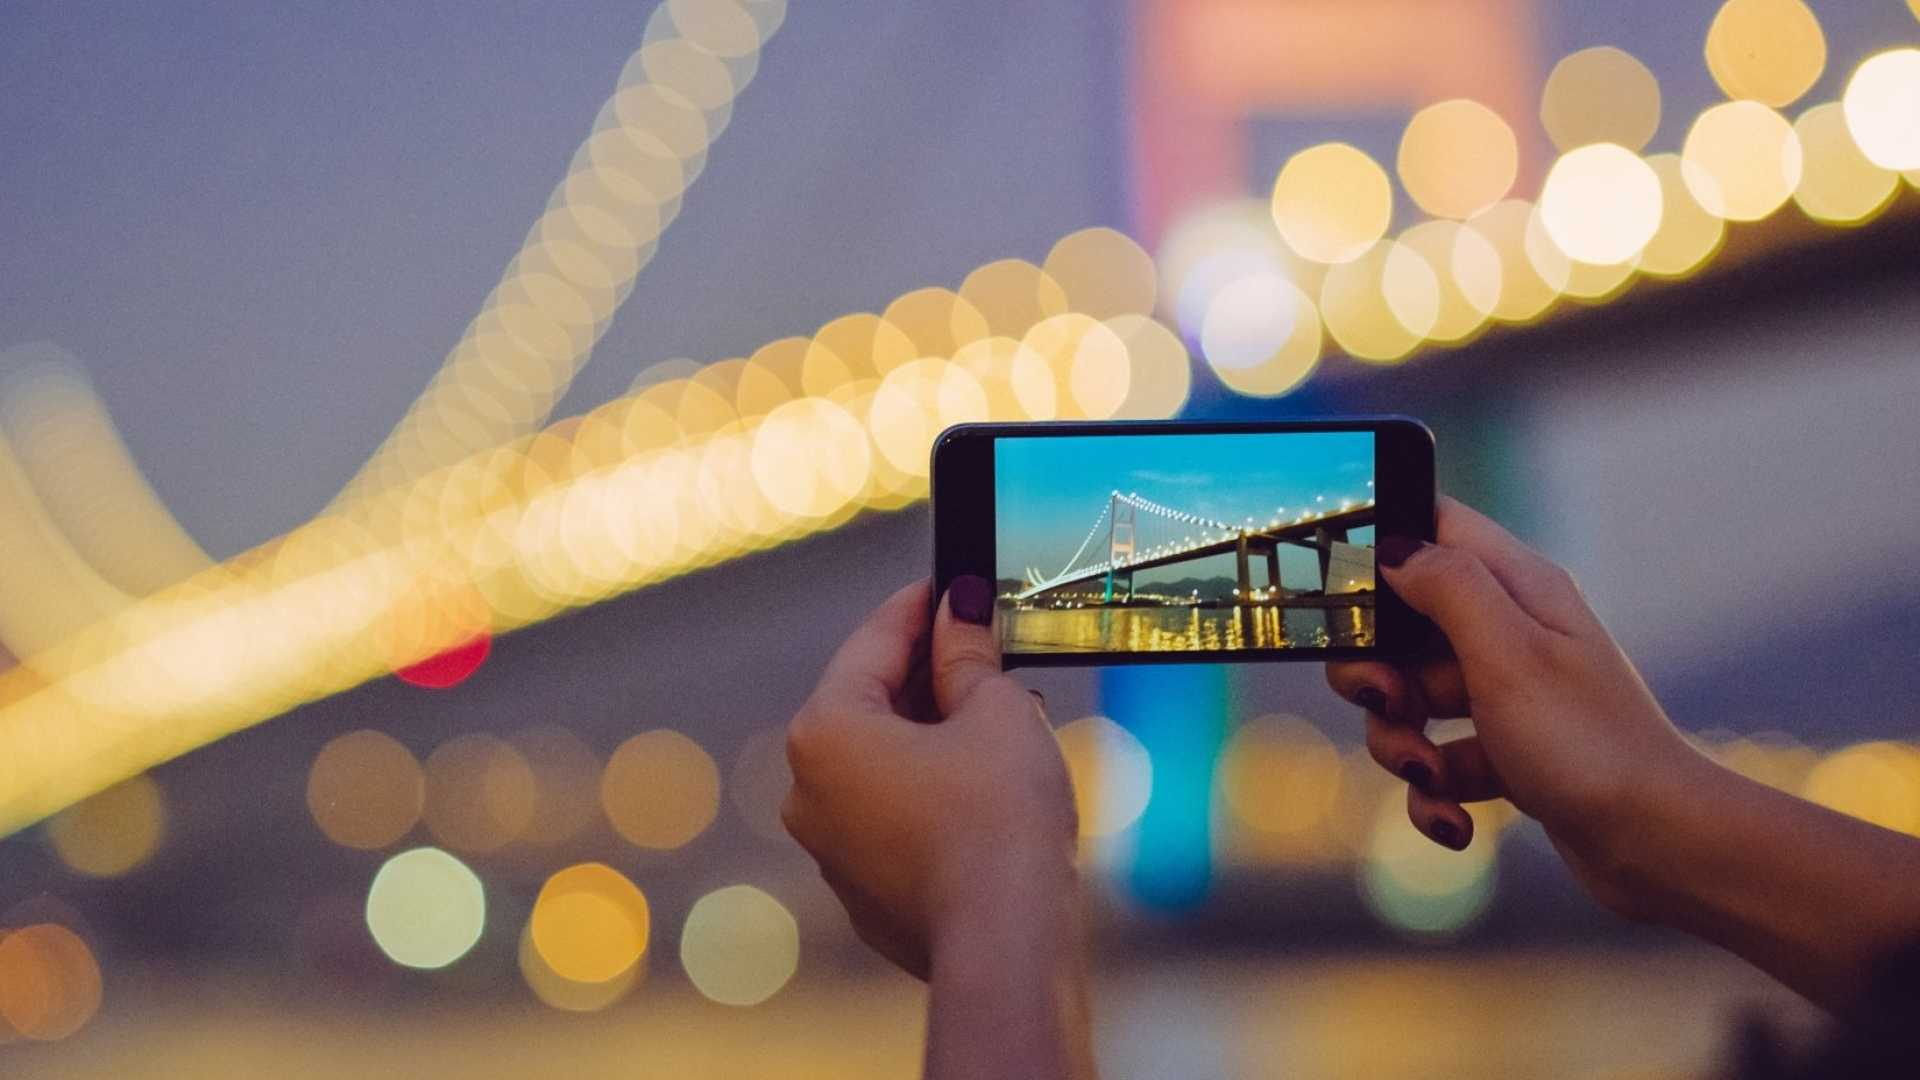 Instagram Just Made It a Lot Easier to Market Your Company